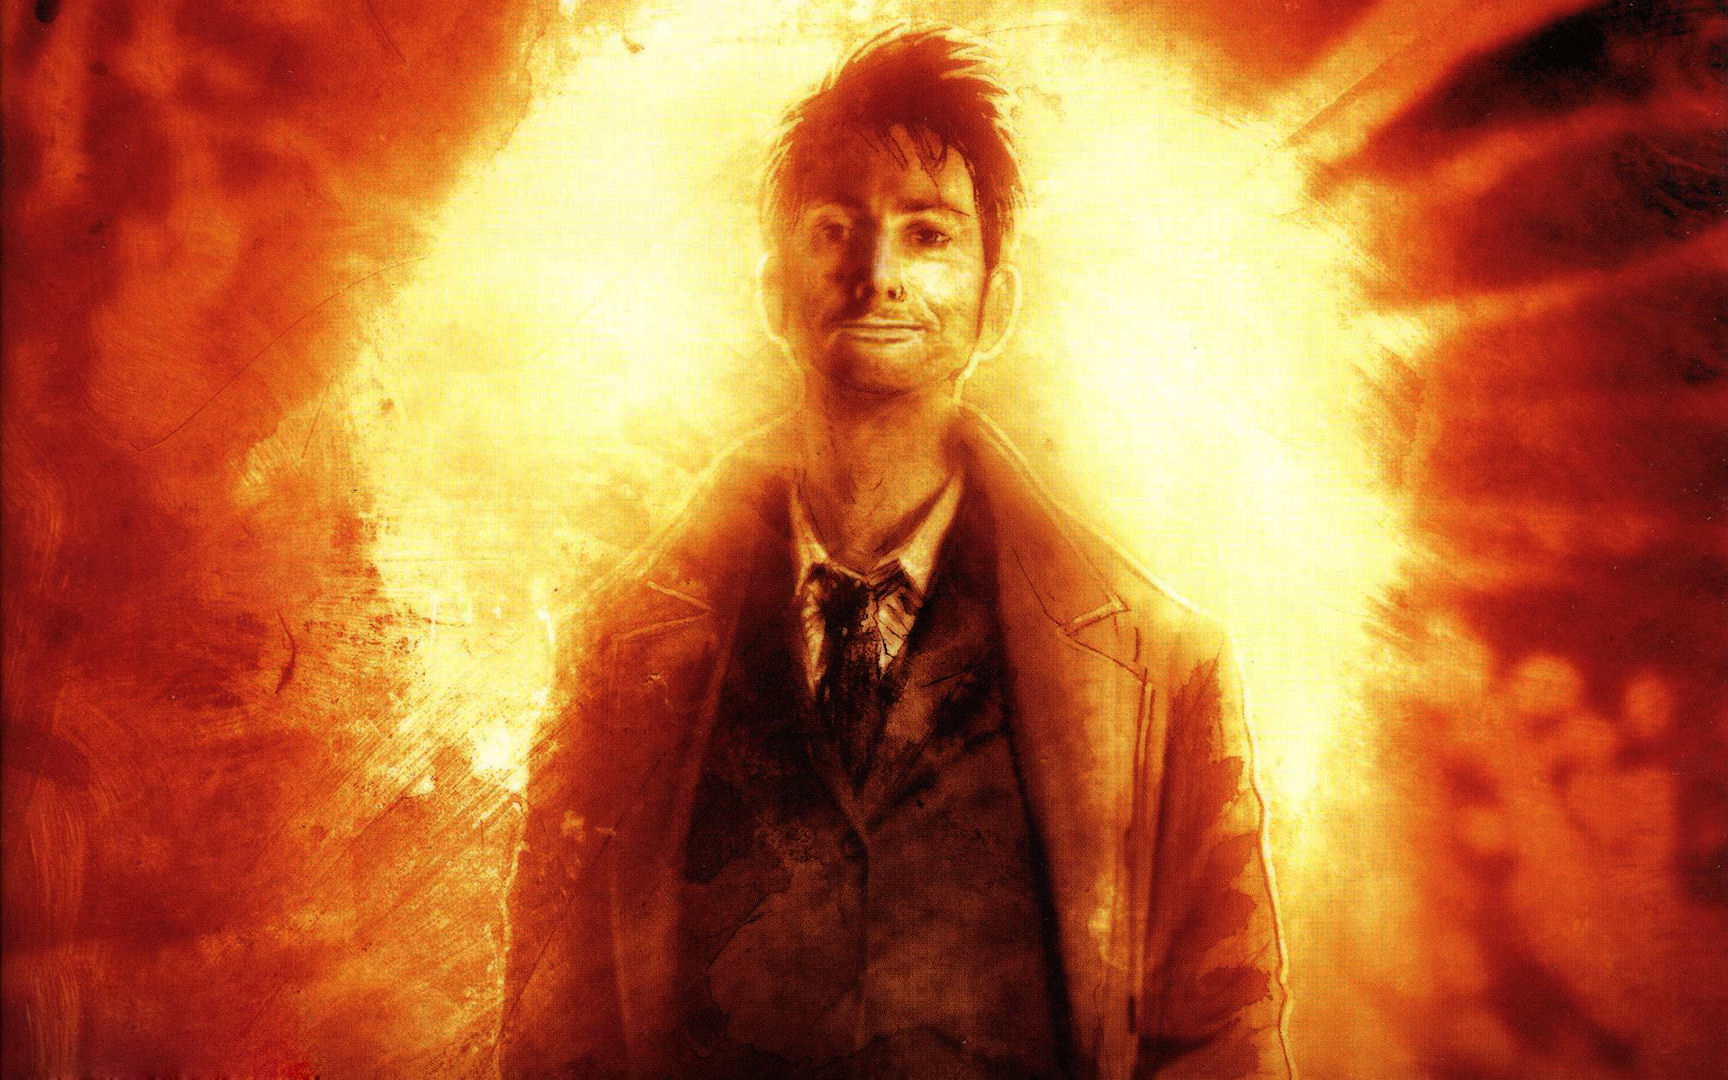 Doctor-Who-doctor-who-21357464-1920-1200-A.jpg